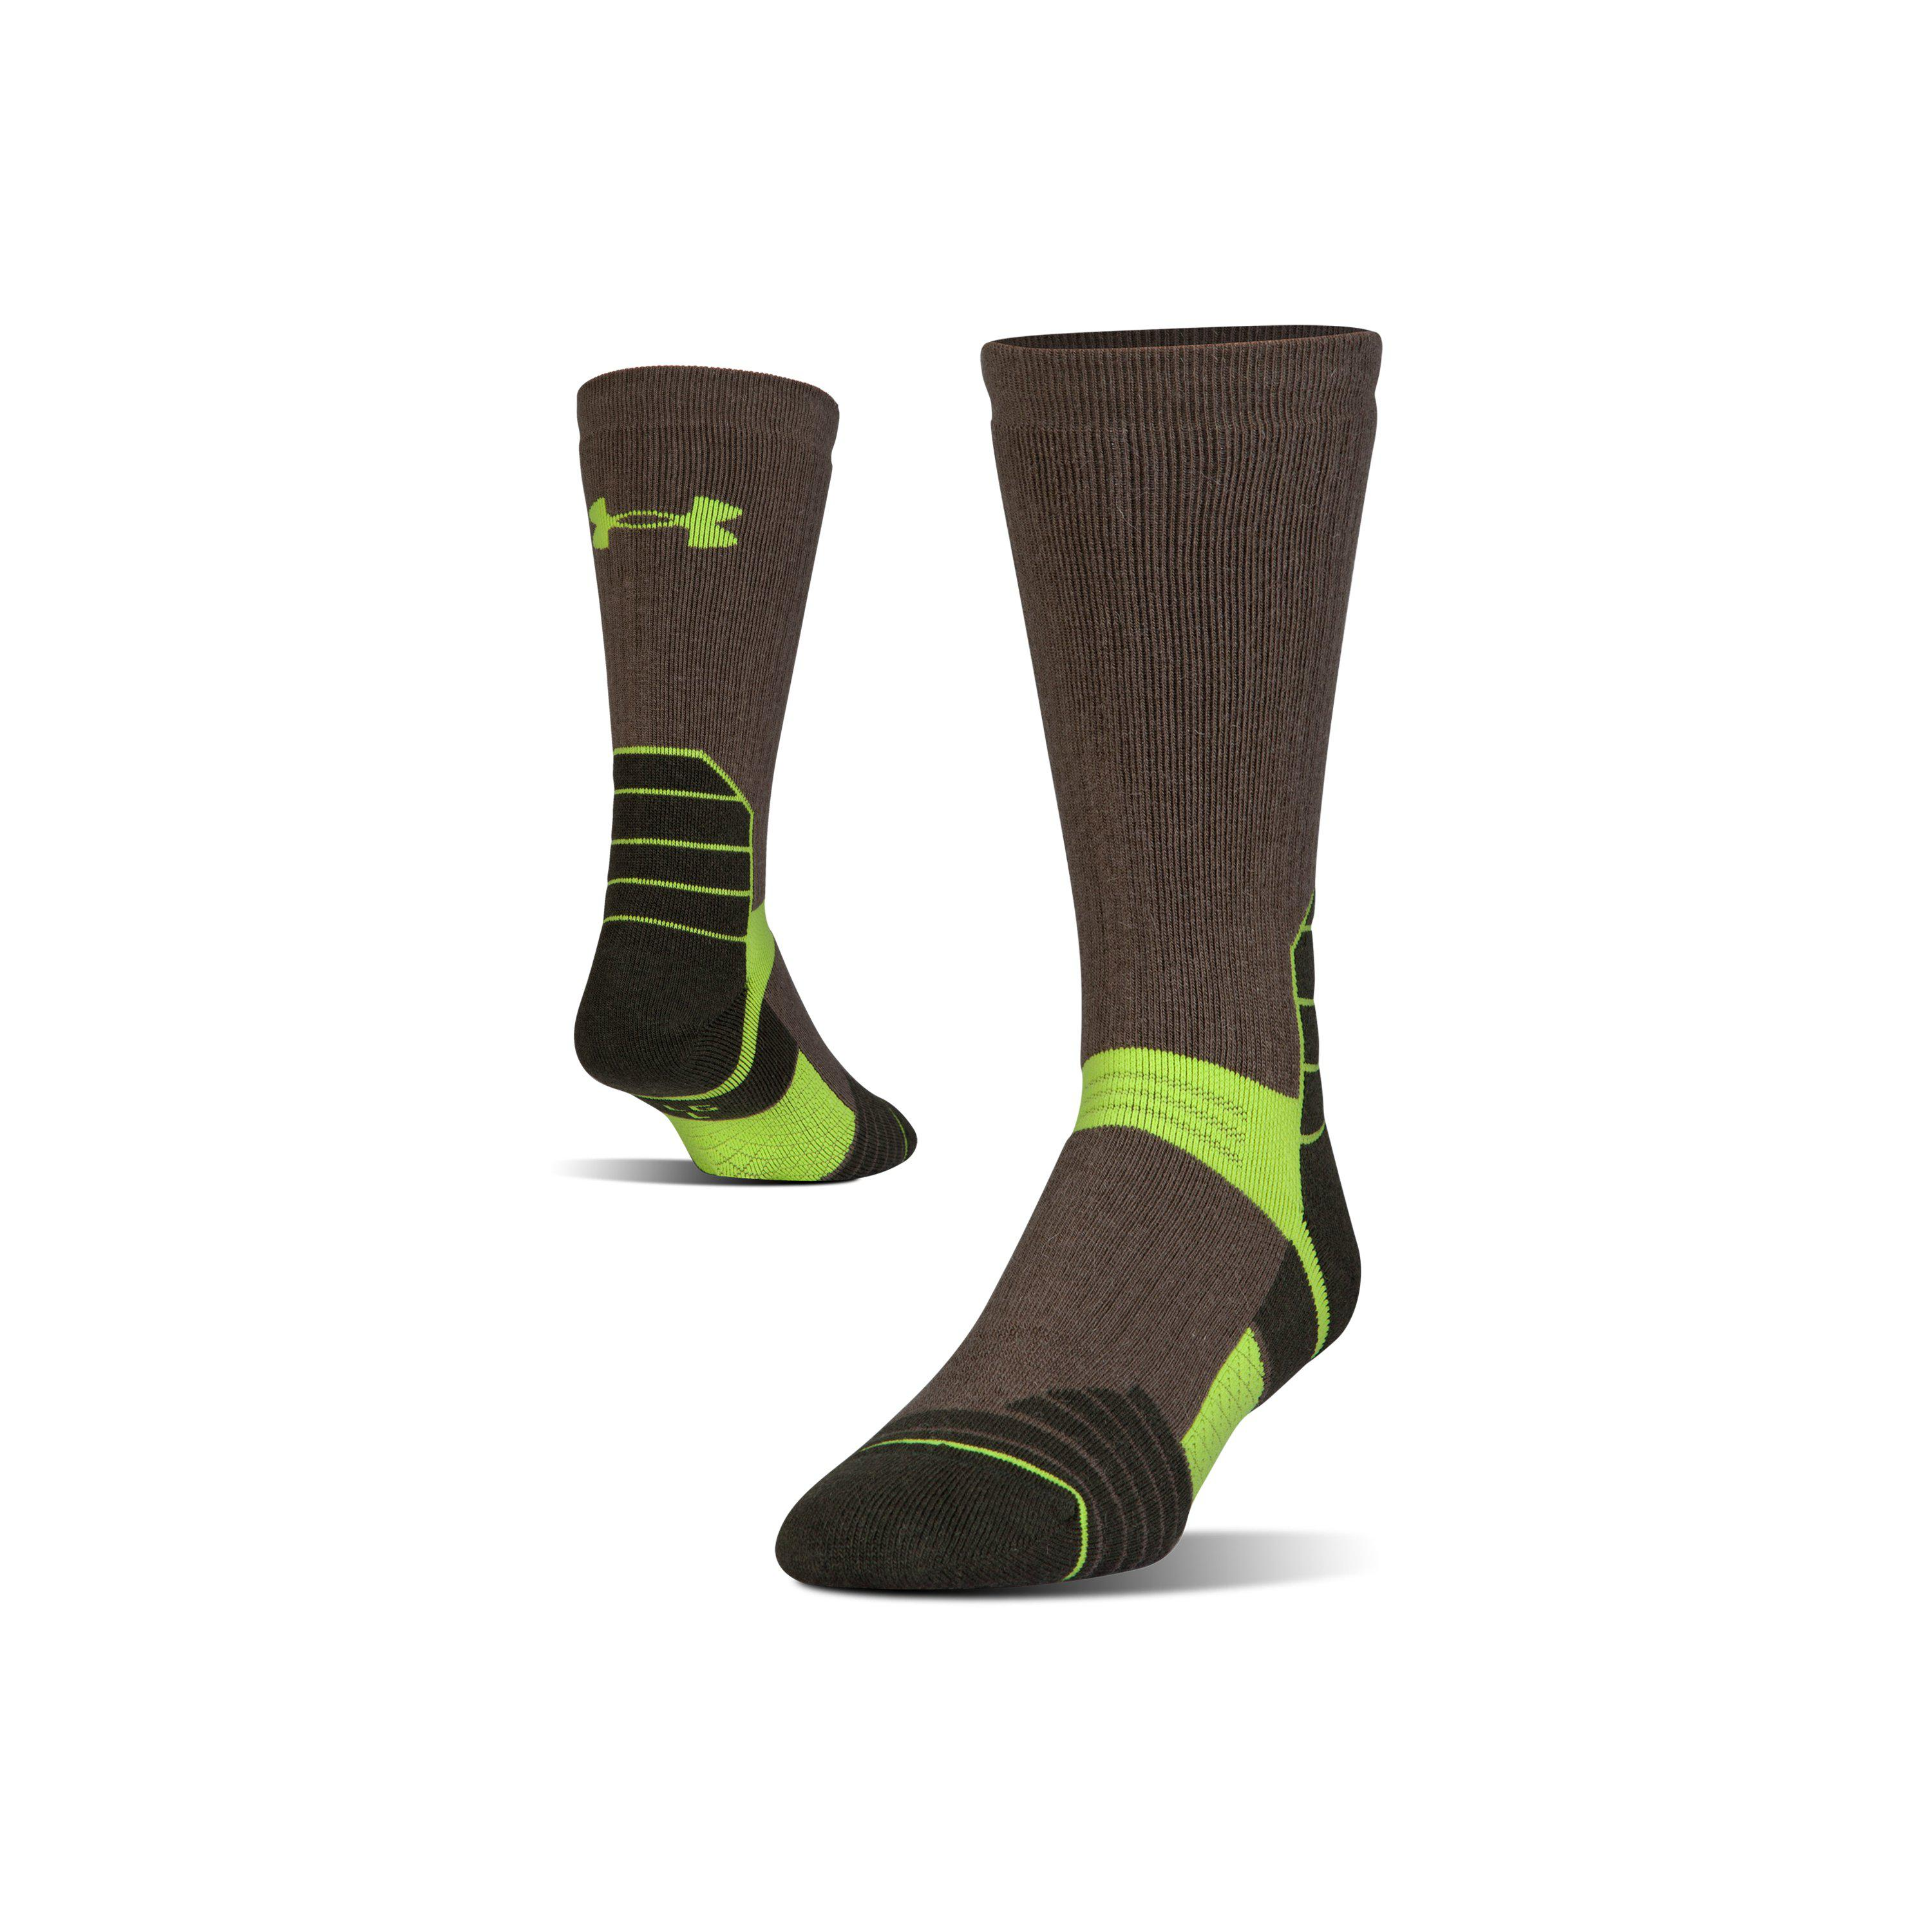 a804409e7 Lyst - Under Armour Men's Ua Scent Control Boot Socks in Green for Men